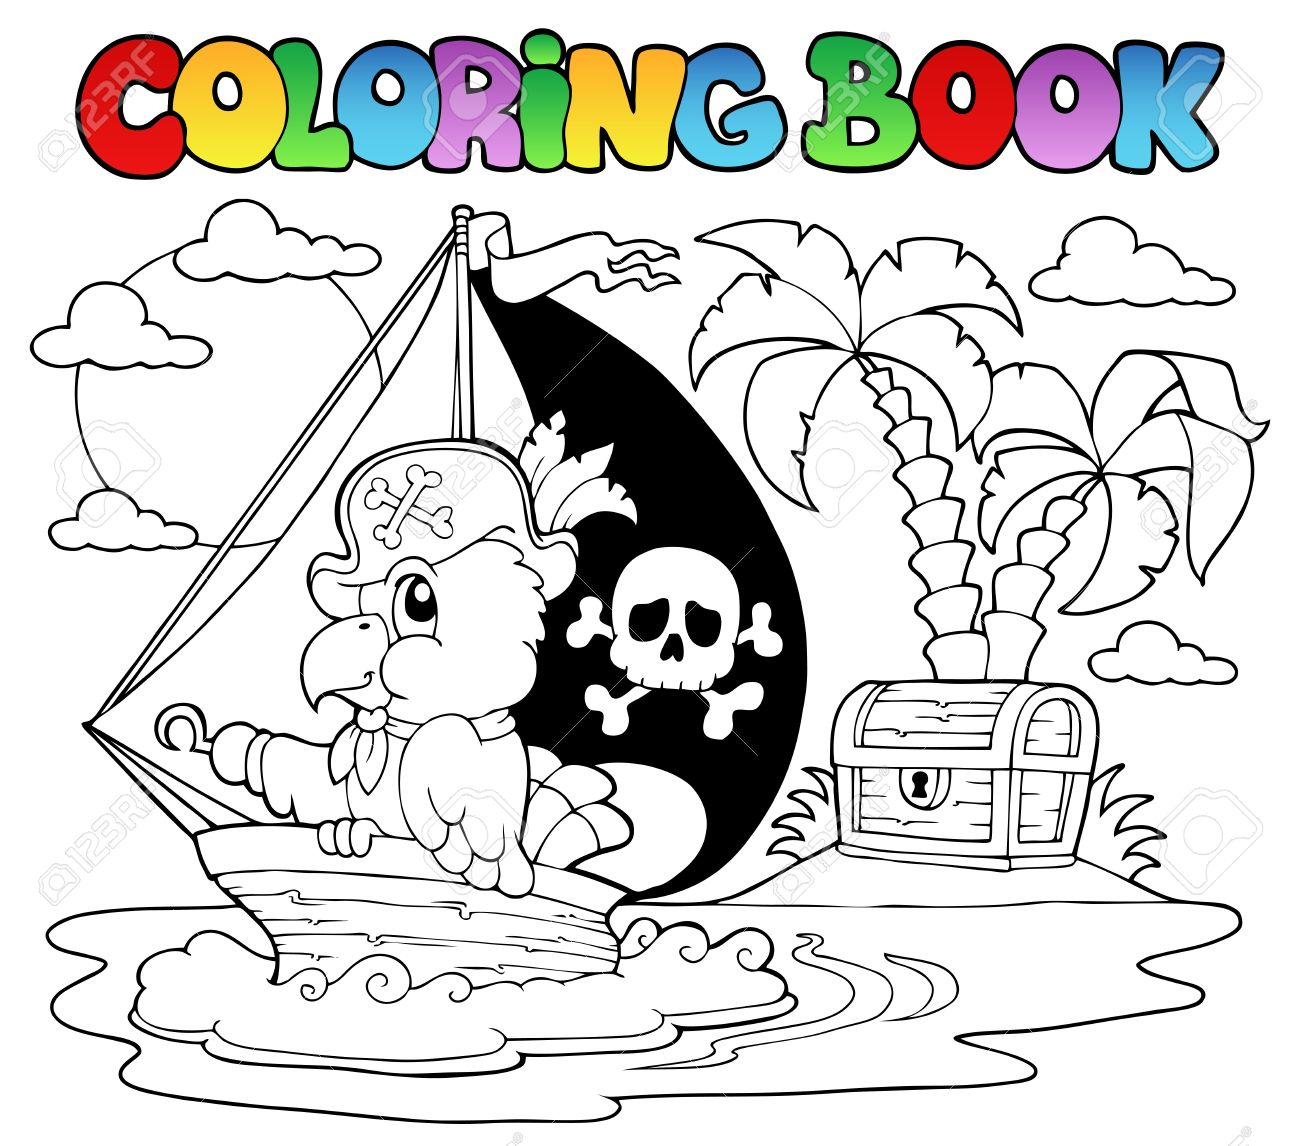 Coloring Book Pirate Parrot Theme Illustration Royalty Free ...